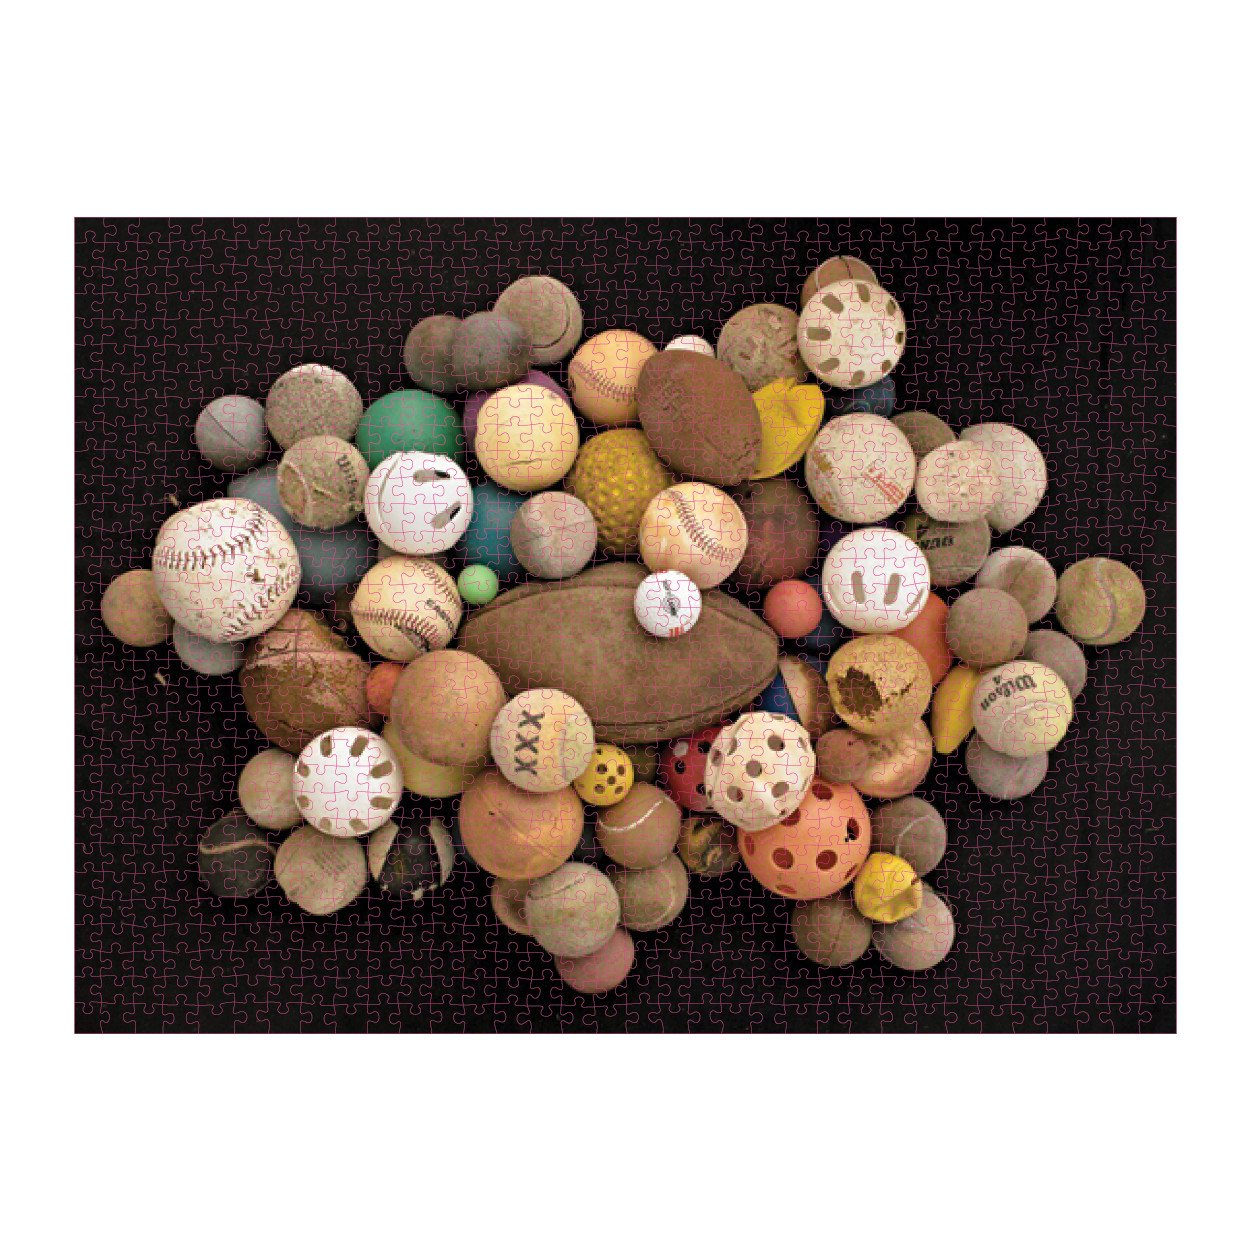 Galison Puzzle-Found in Nature: Beached Balls 1000 Piece